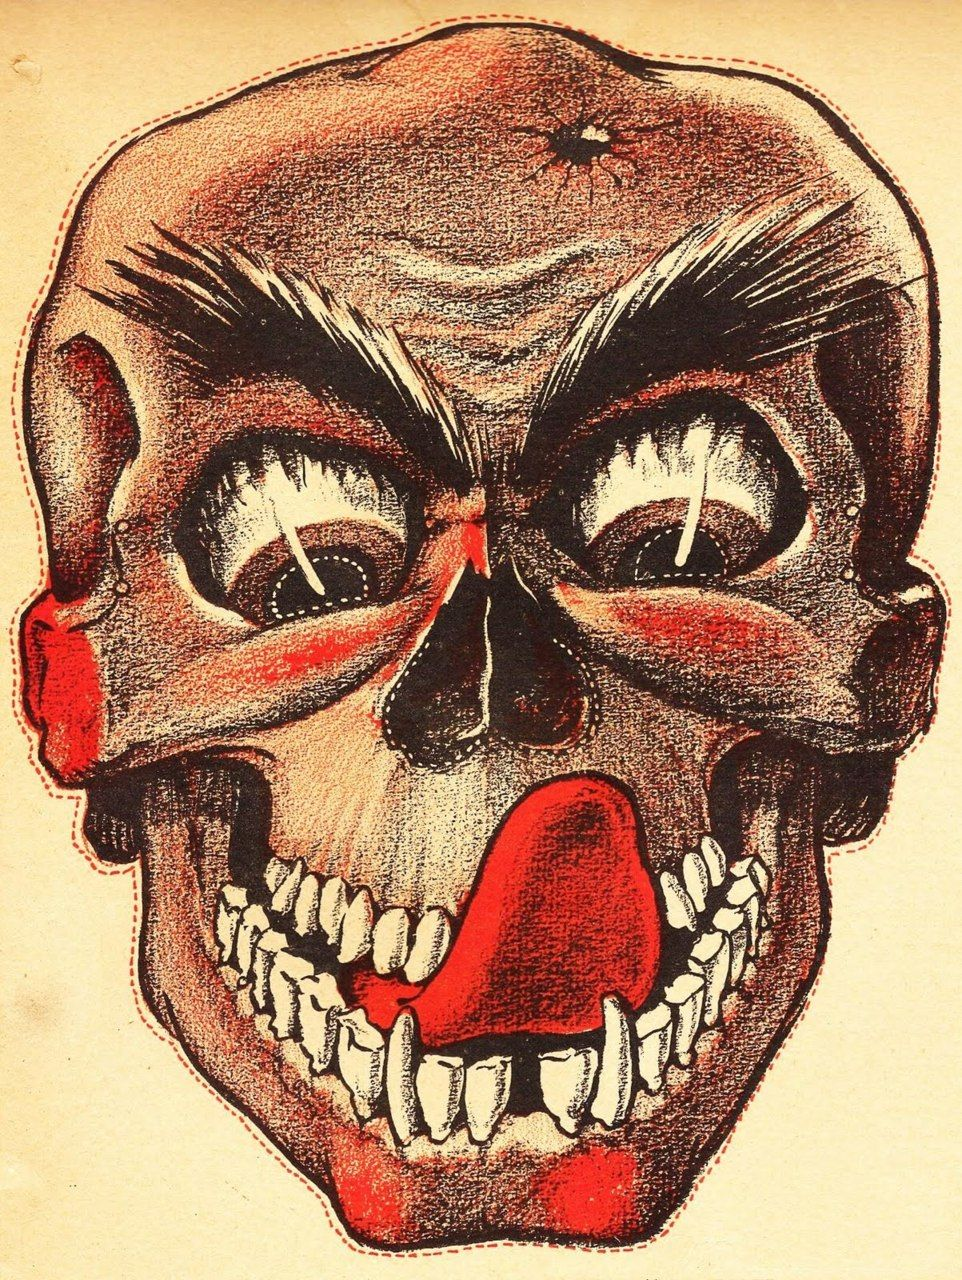 Halloween Mask from Weeny Witch Halloween Book c 1950s | Art ...